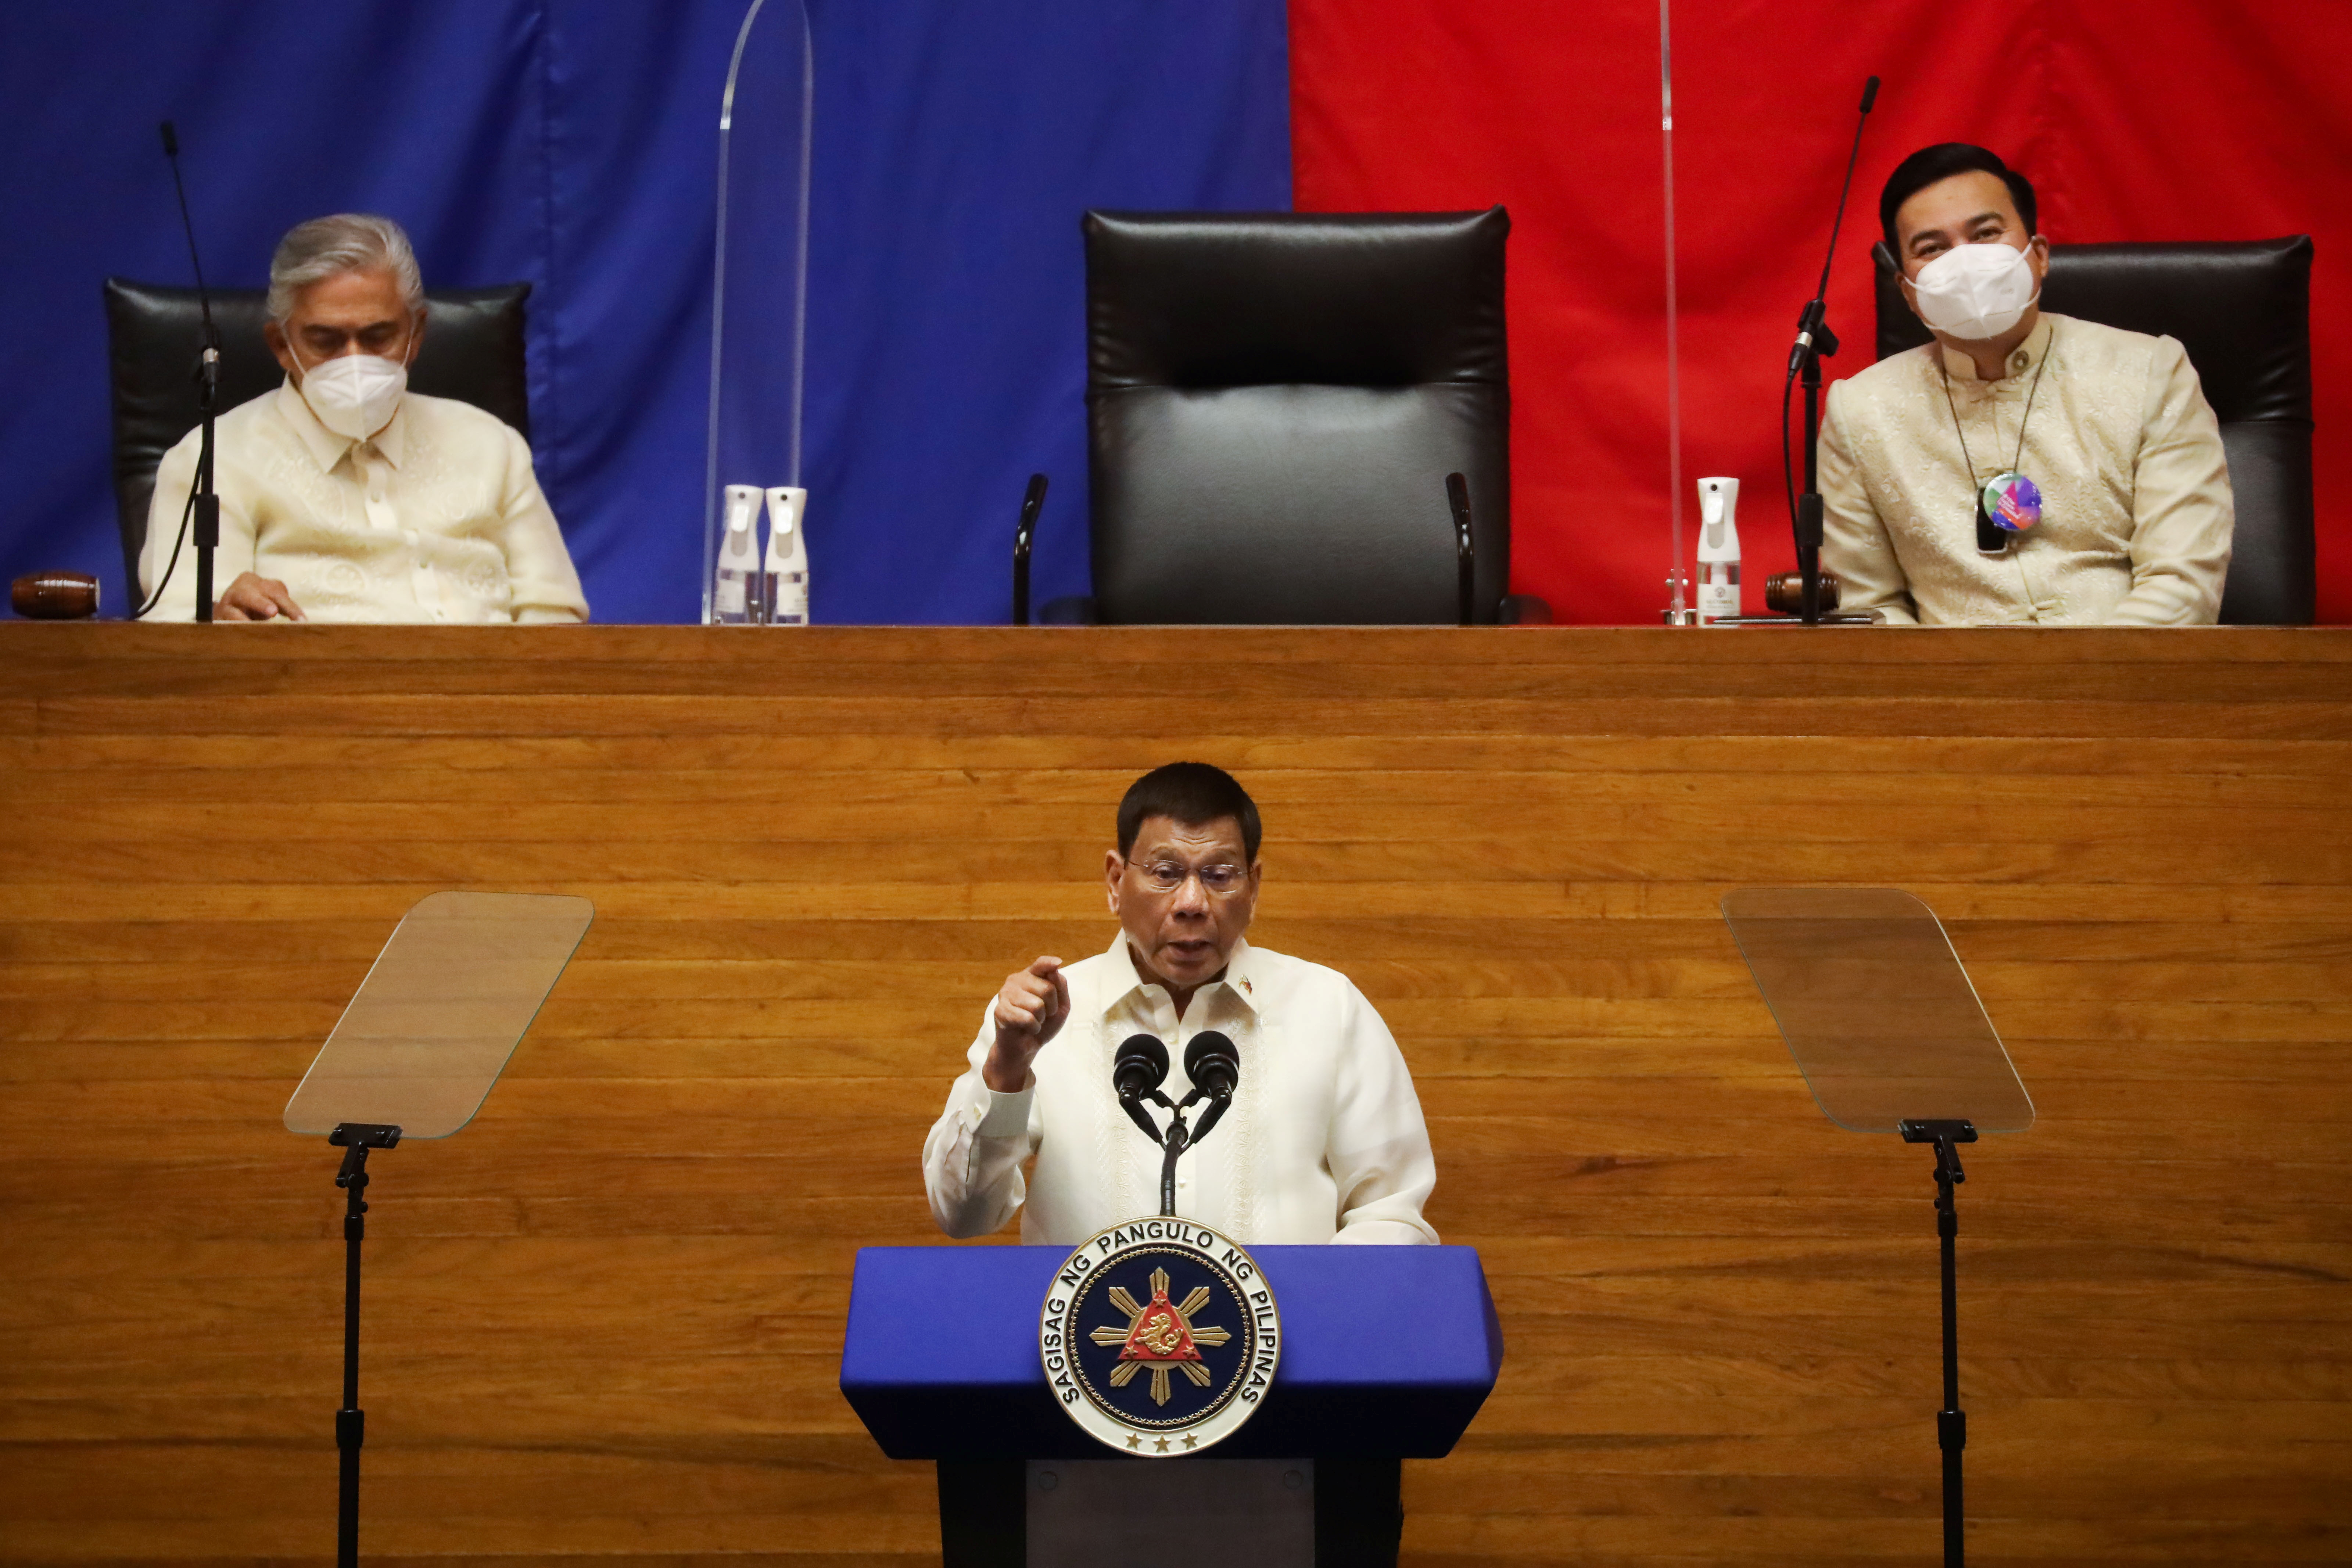 Philippine President Rodrigo Duterte delivers his 6th State of the Nation Address (SONA) as Senate President Vicente Sotto III and House Speaker Lord Allan Velasco listen, at the House of Representative in Quezon City, Metro Manila, Philippines, July 26, 2021. REUTERS/Lisa Marie David